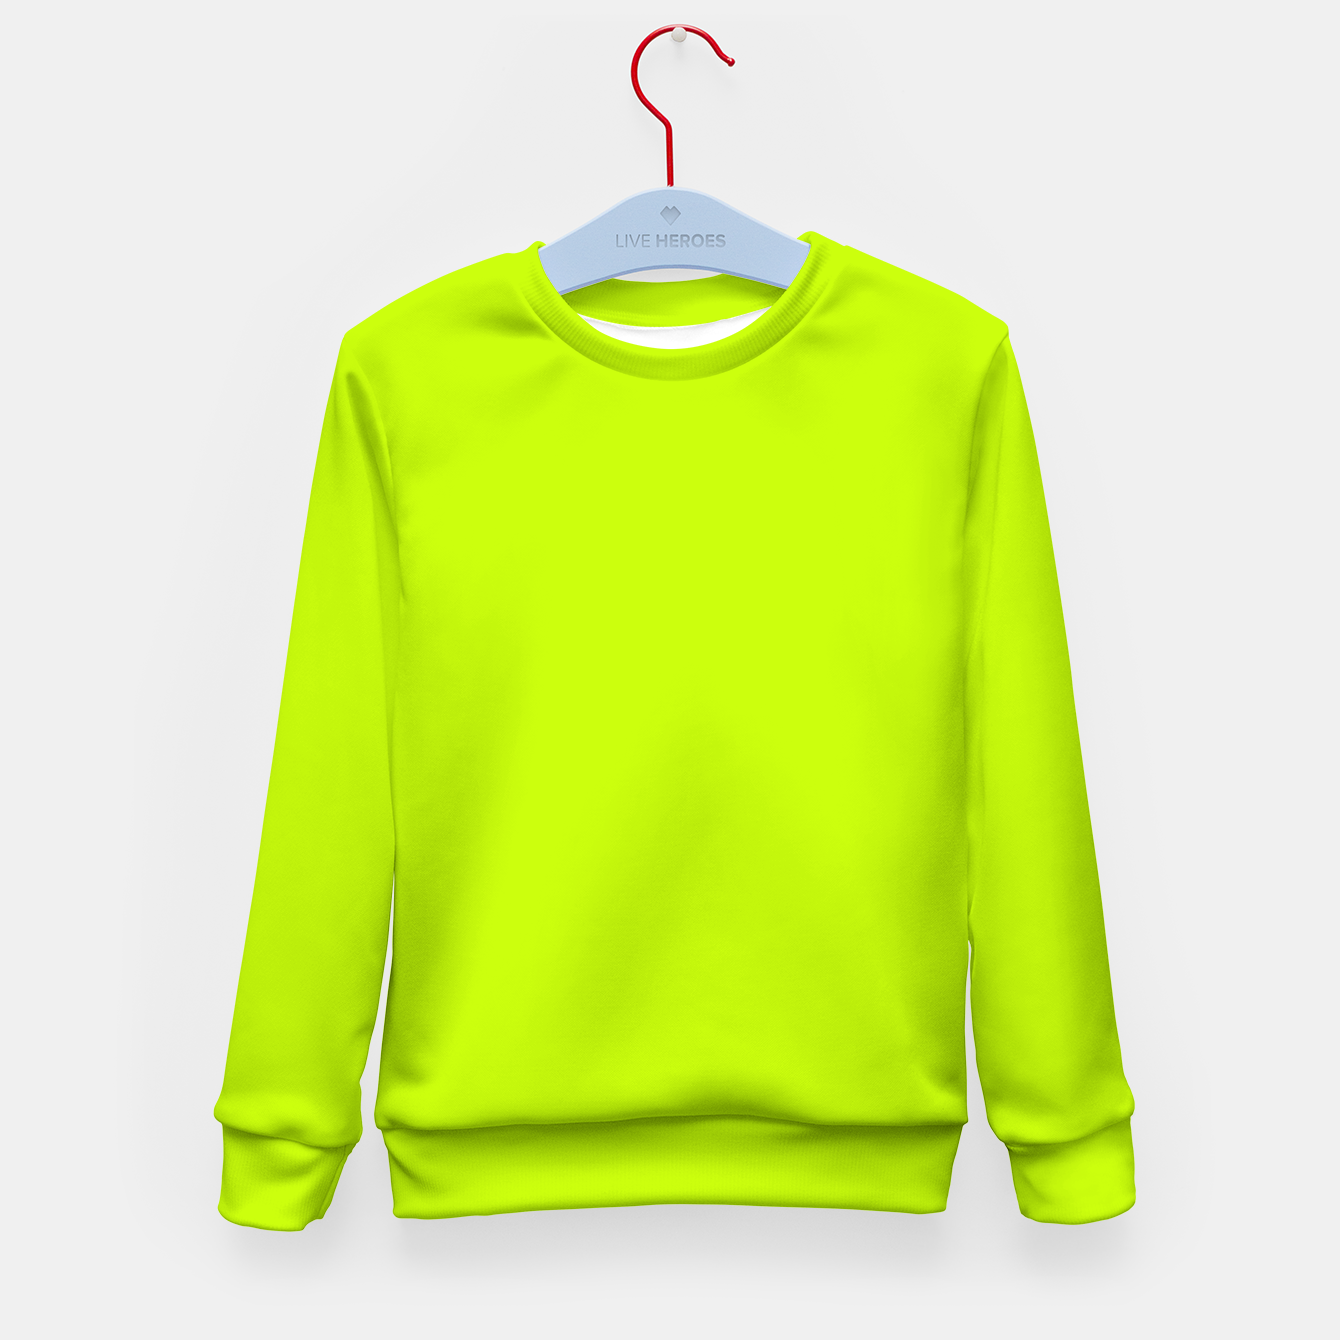 Imagen de Bitter Lime Neon Green Yellow Solid Color Kid's sweater - Live Heroes